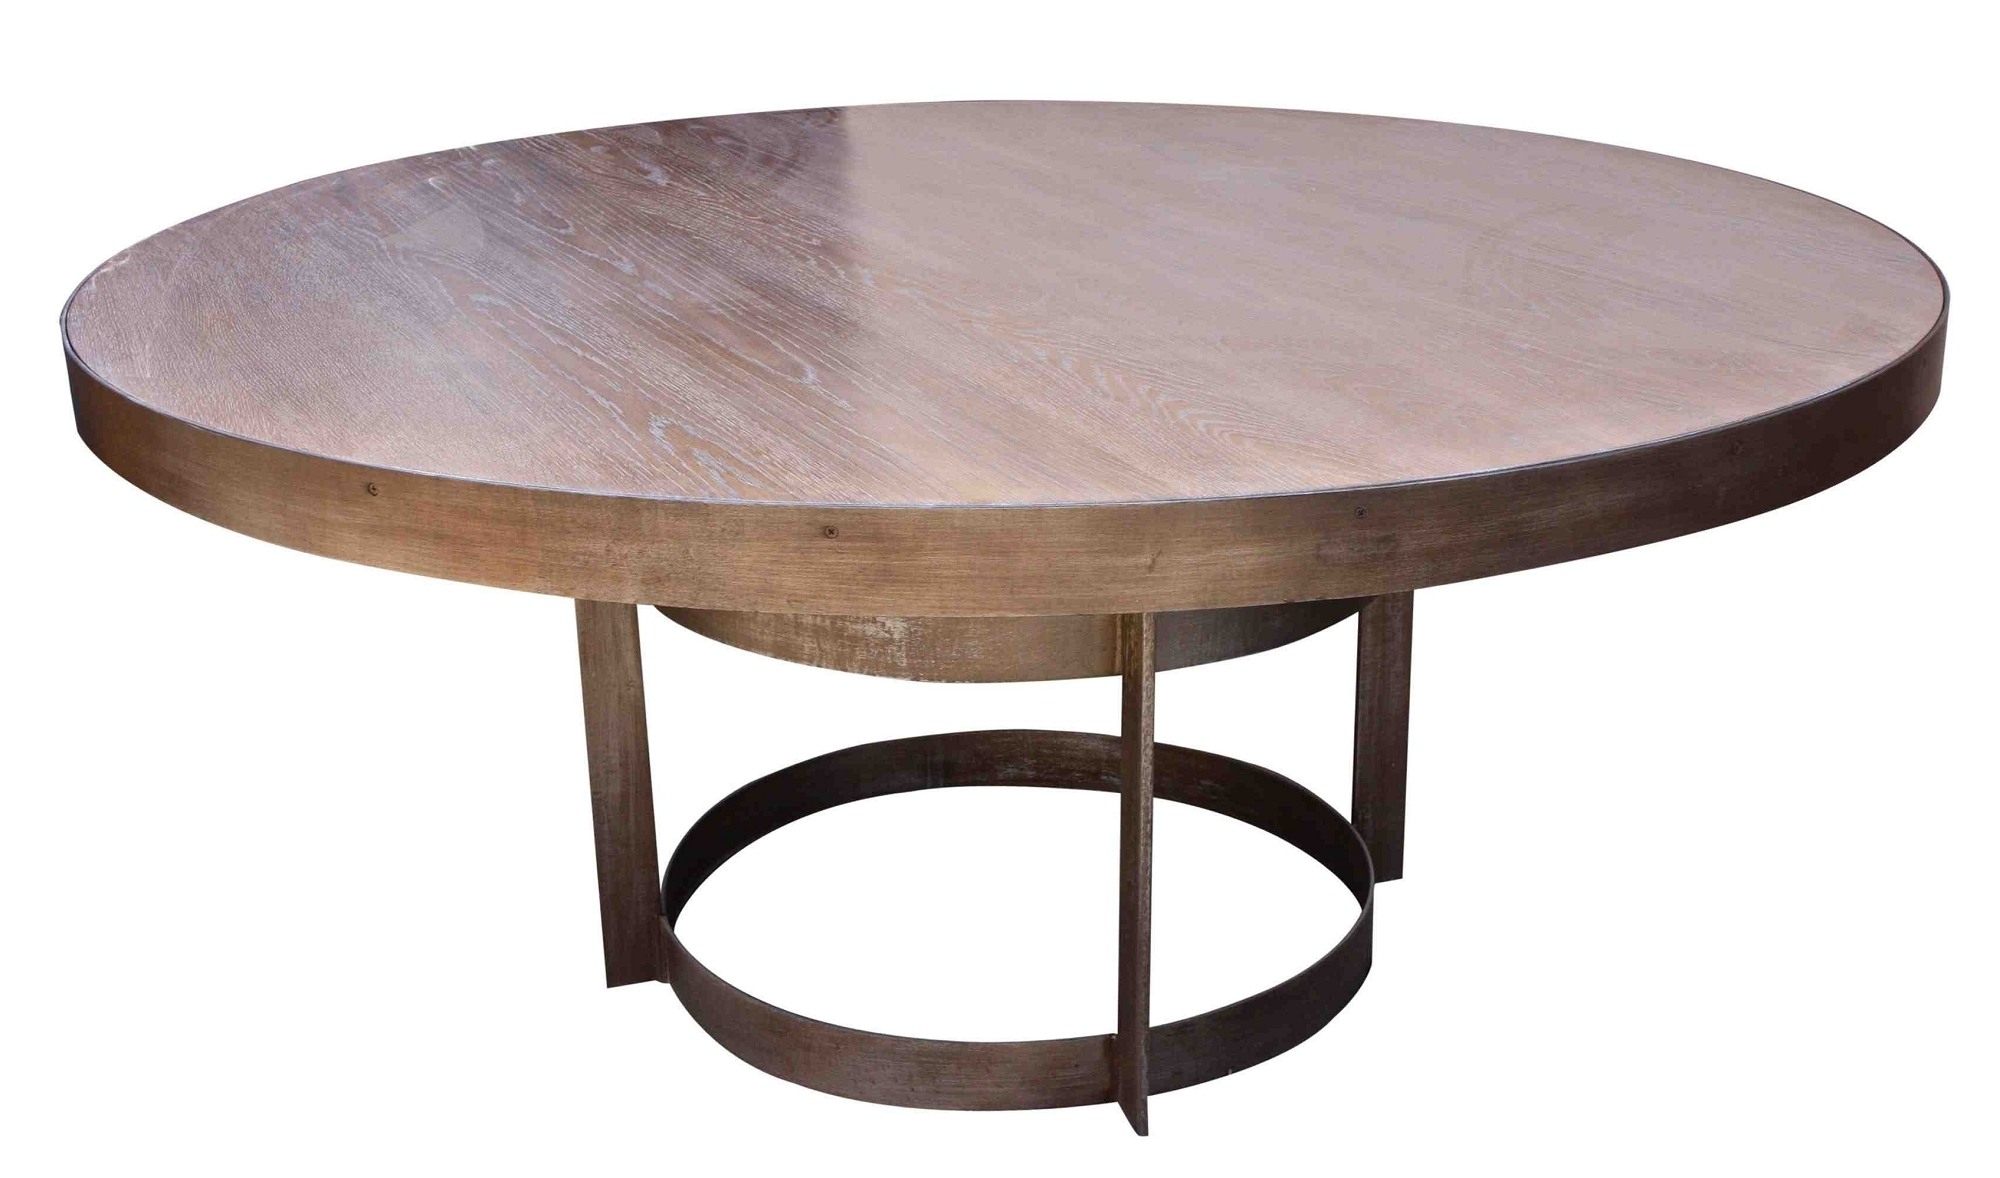 Dining Tables : Square Pedestal Table 54 Inch Round Dining, 54 Round In Newest Caira Black Round Dining Tables (View 21 of 25)